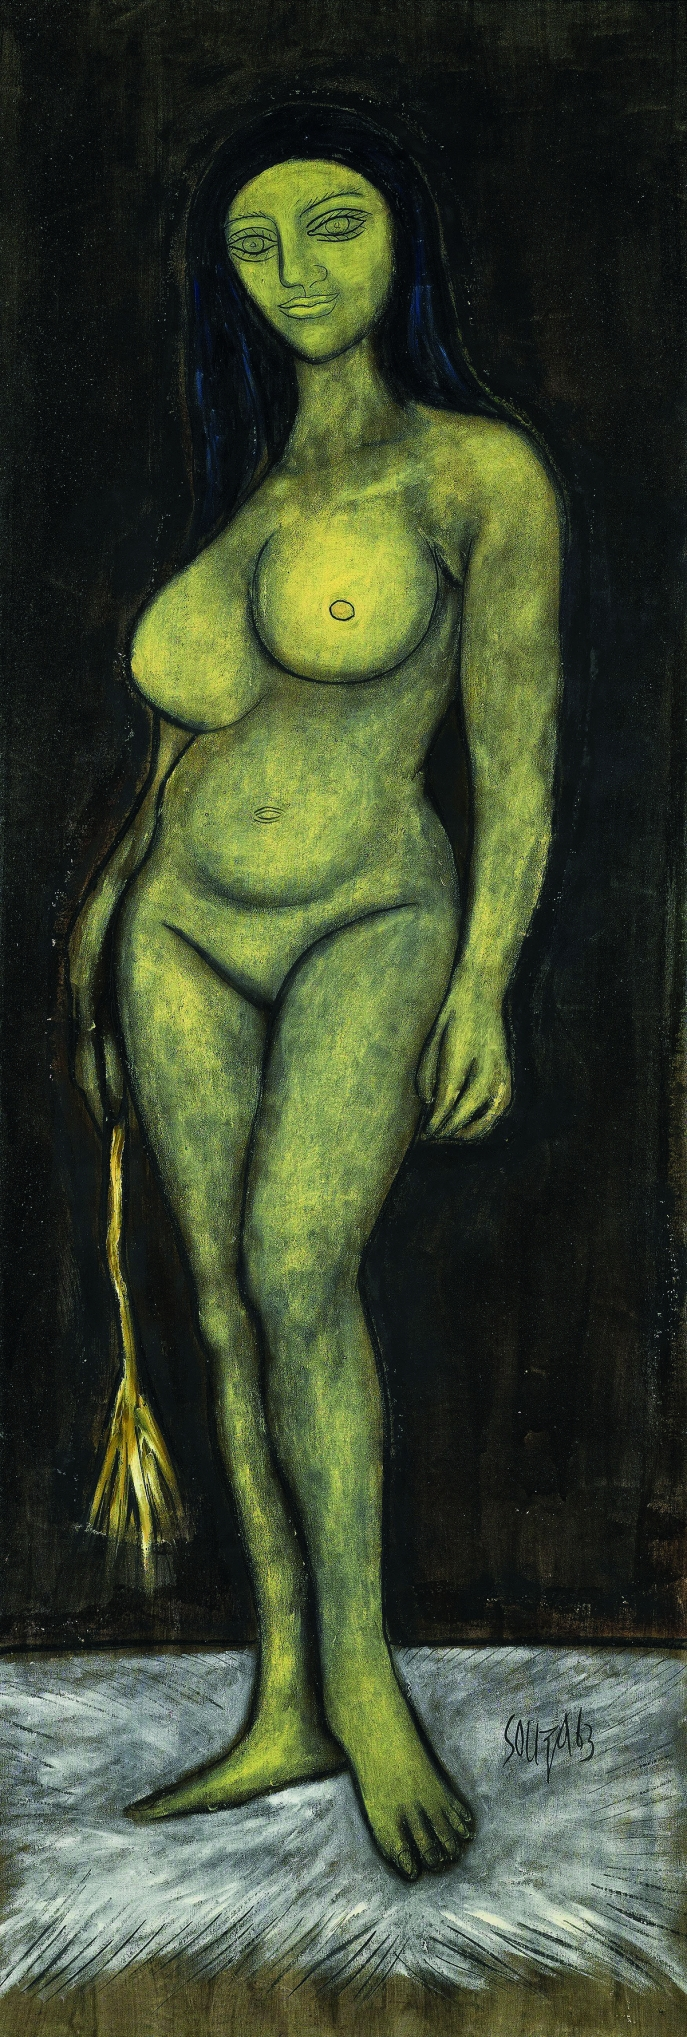 F. N. Souza. Girl with the Silken Whip, 1963. Oil on canvas. H. 68 1/2 x W. 23 5/8 in. (174 x 60 cm). Private collection, London. Courtesy of the lender